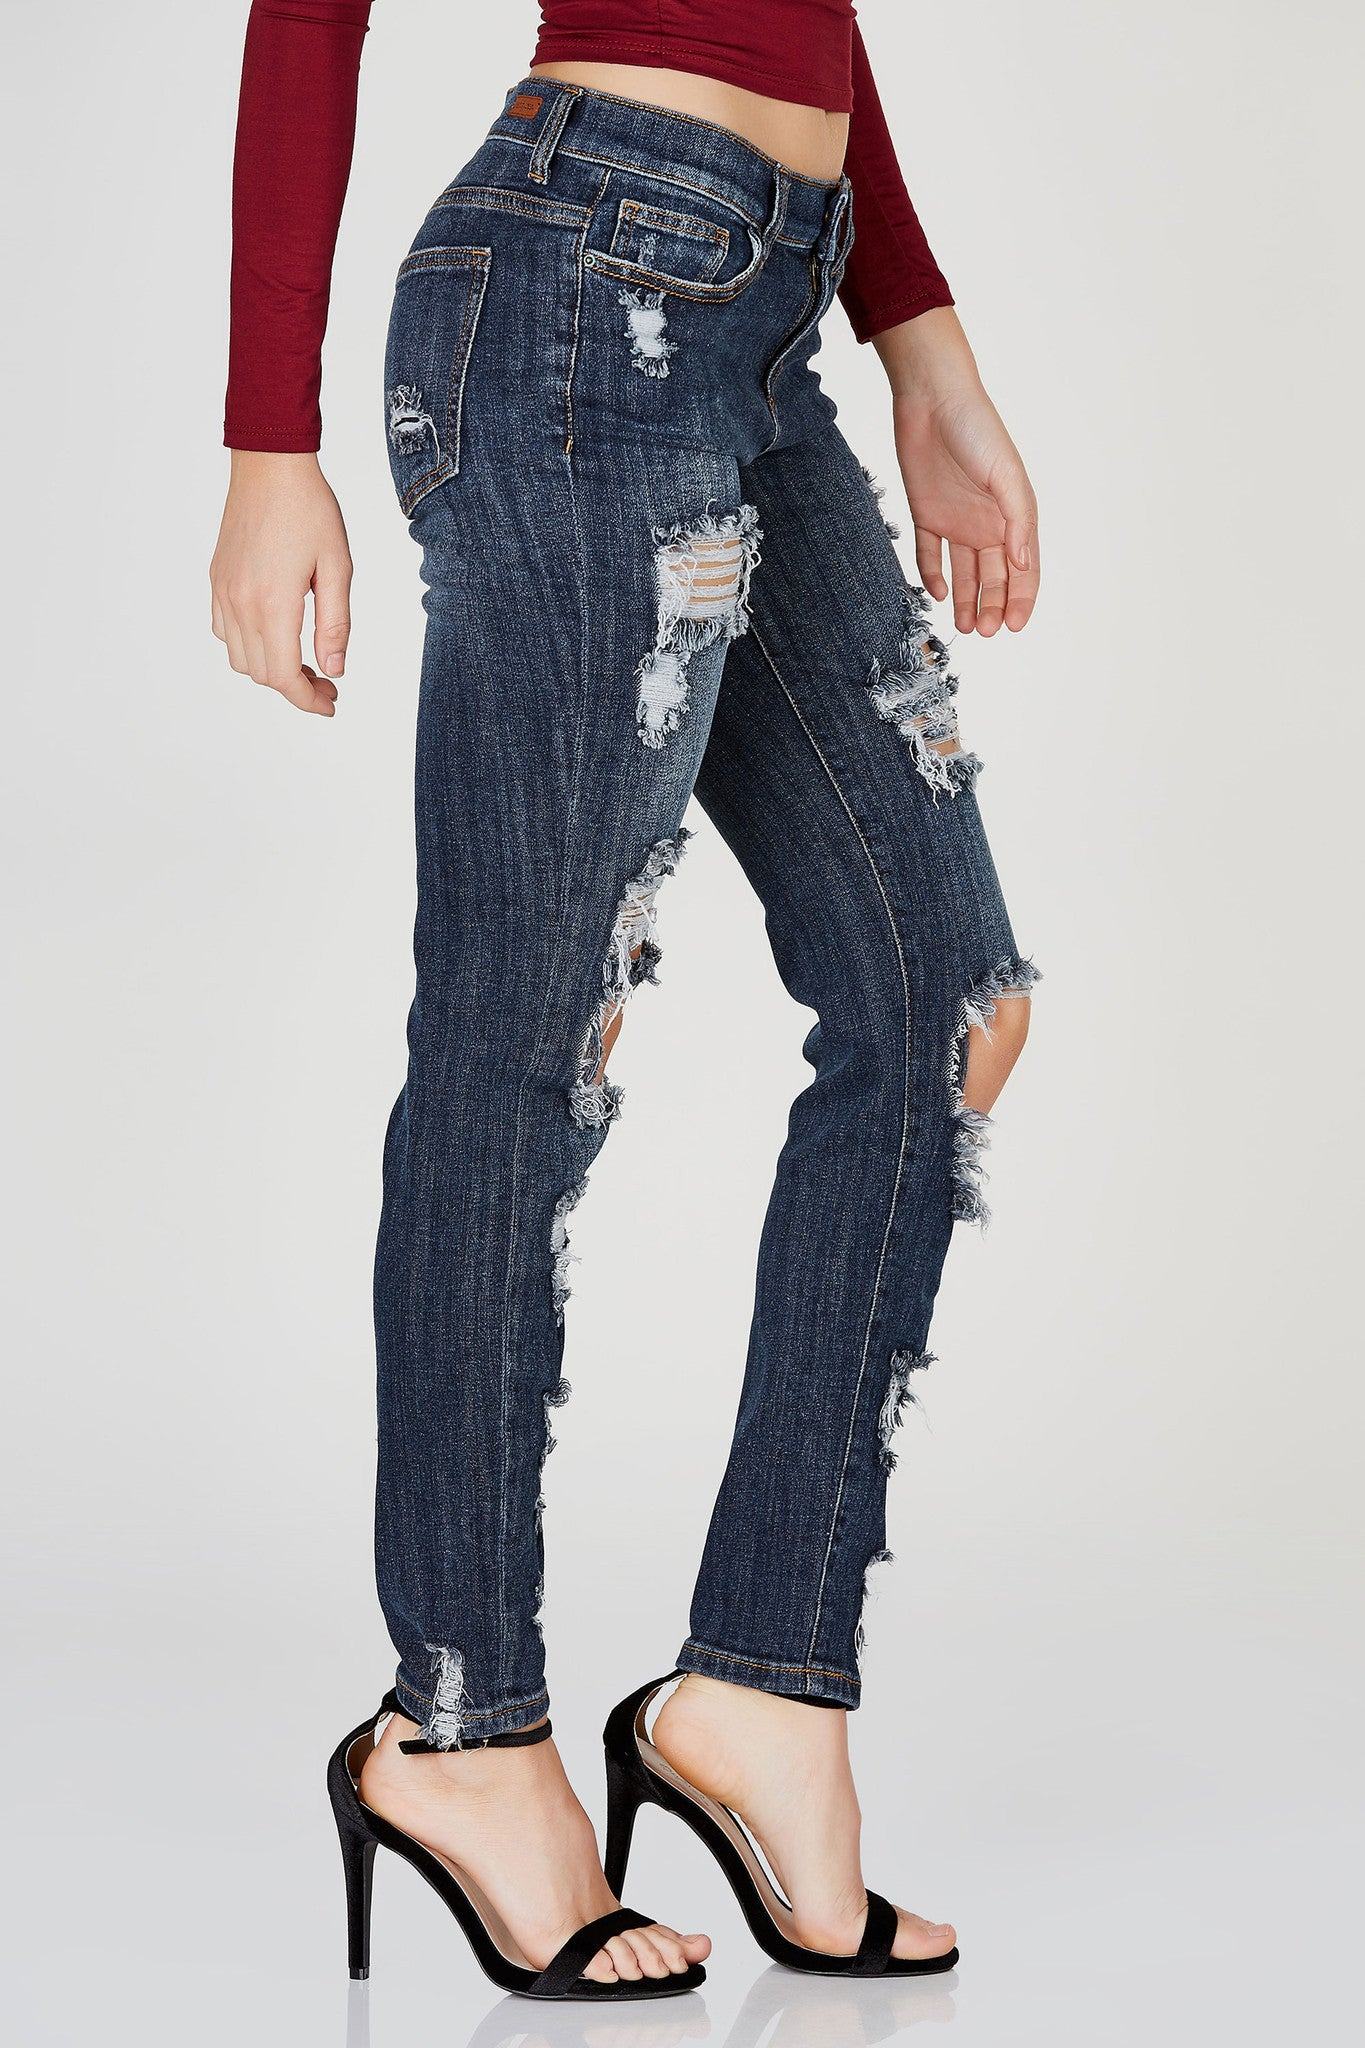 An awesome pair of skinny jeans with some intense distressing throughout for a trendy street-style vibe. Classic five pocket design with slight fading for a vintagesque finish.